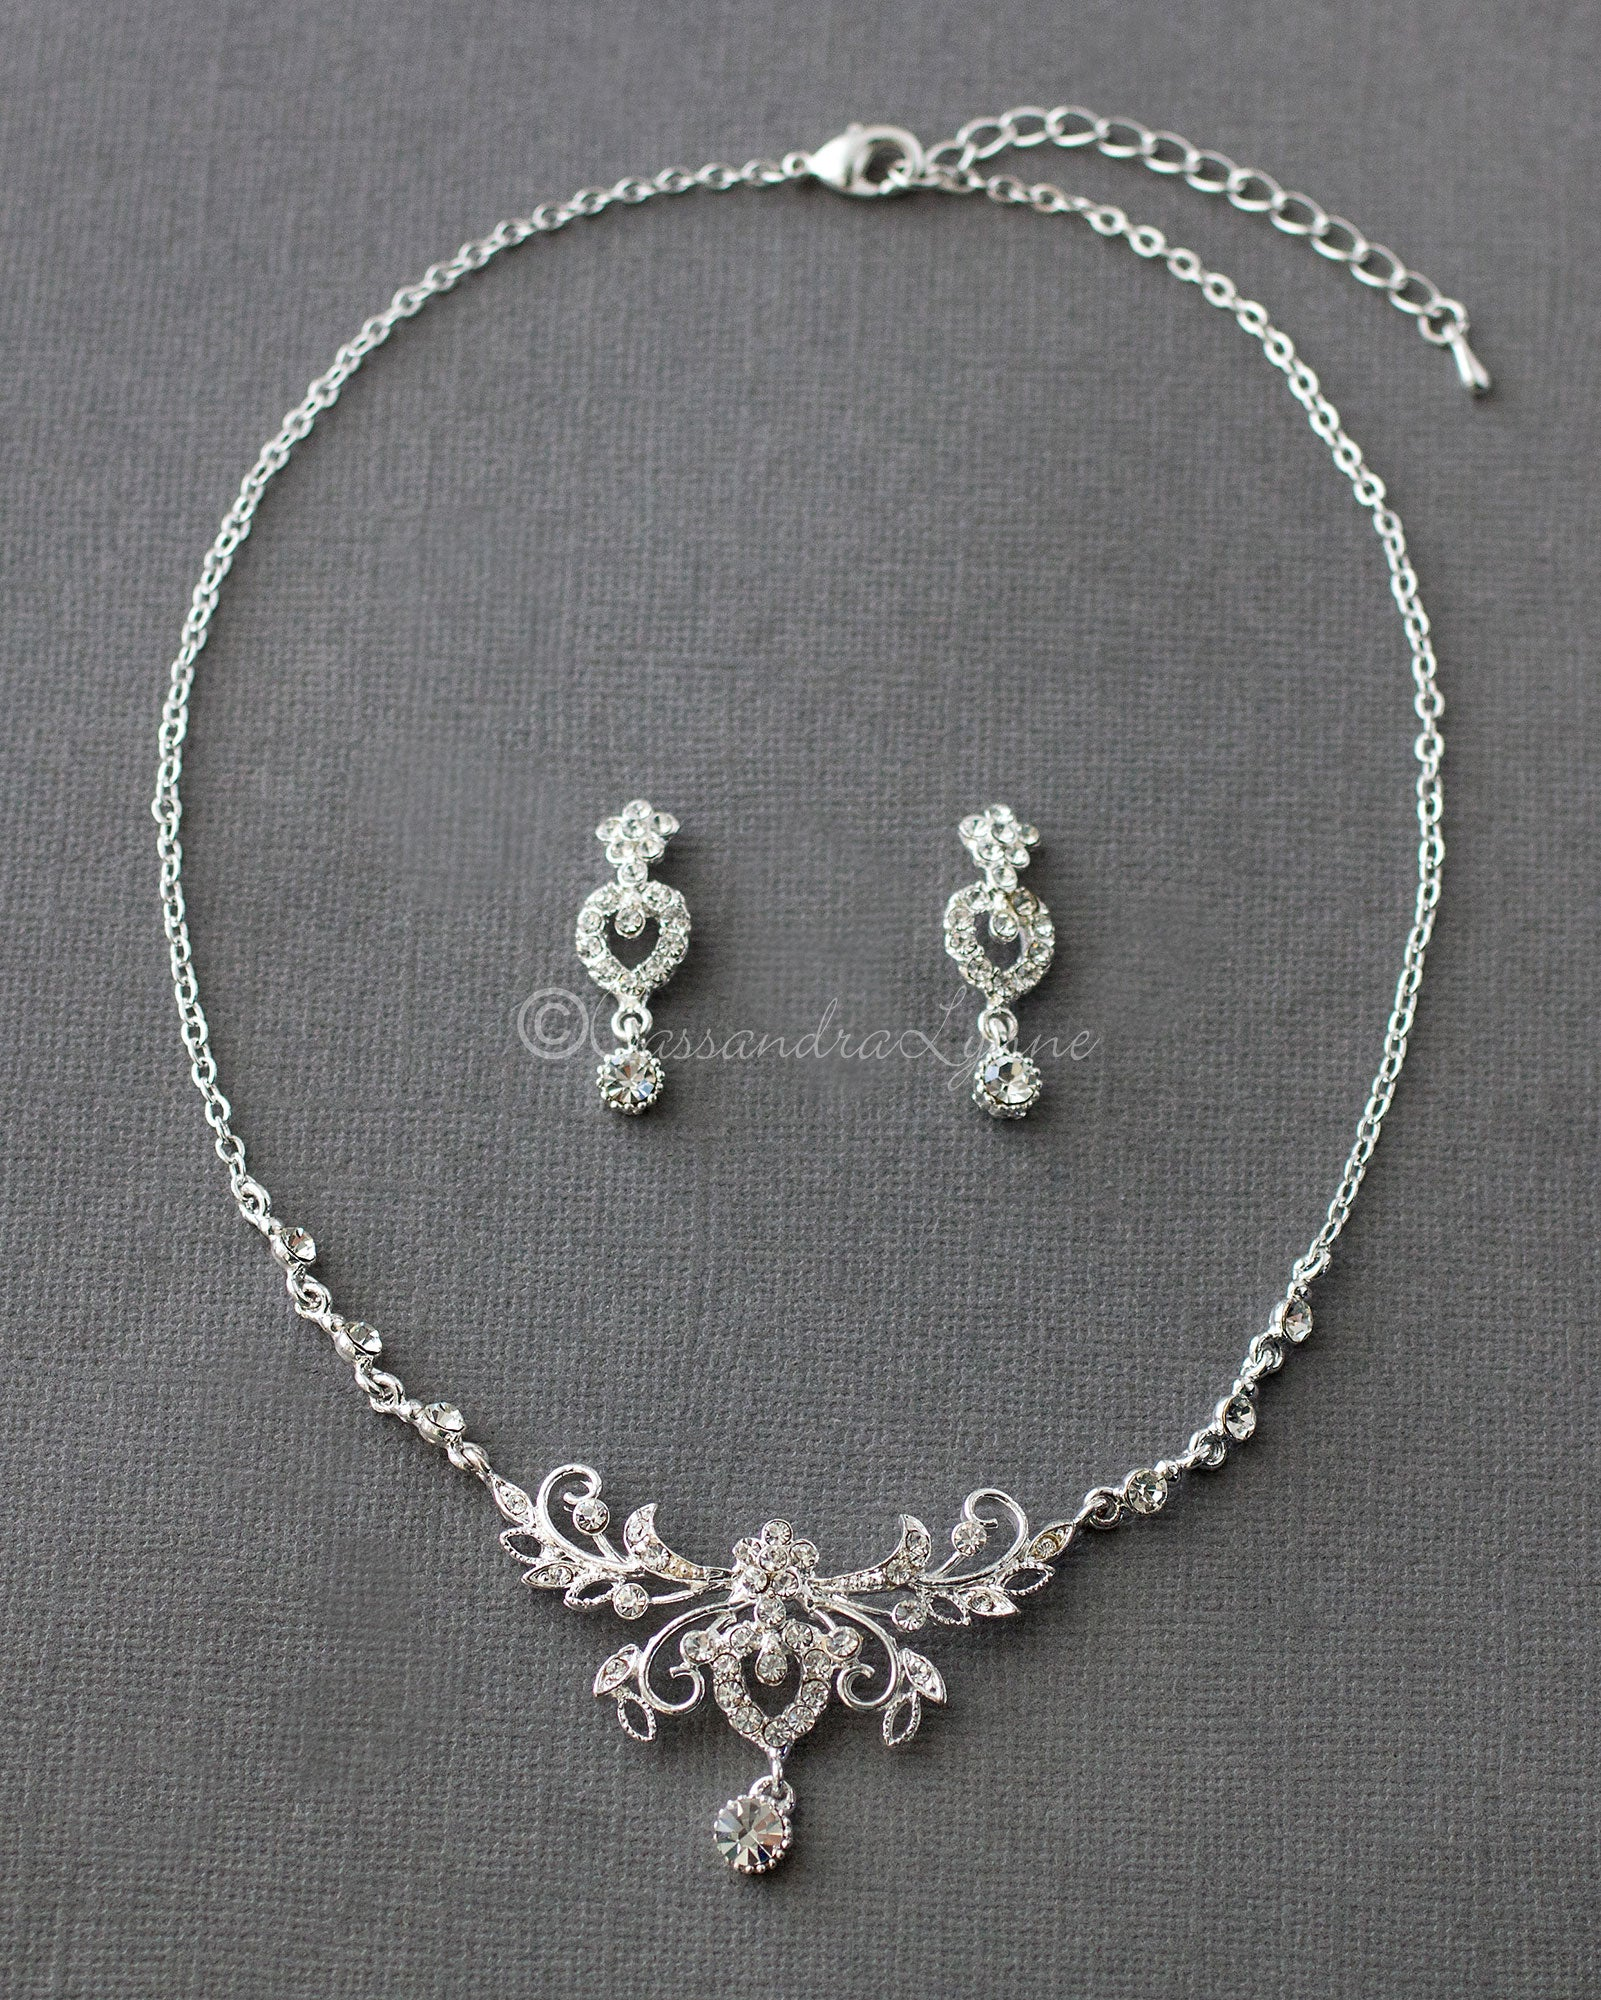 scrolling flower bridal necklace set